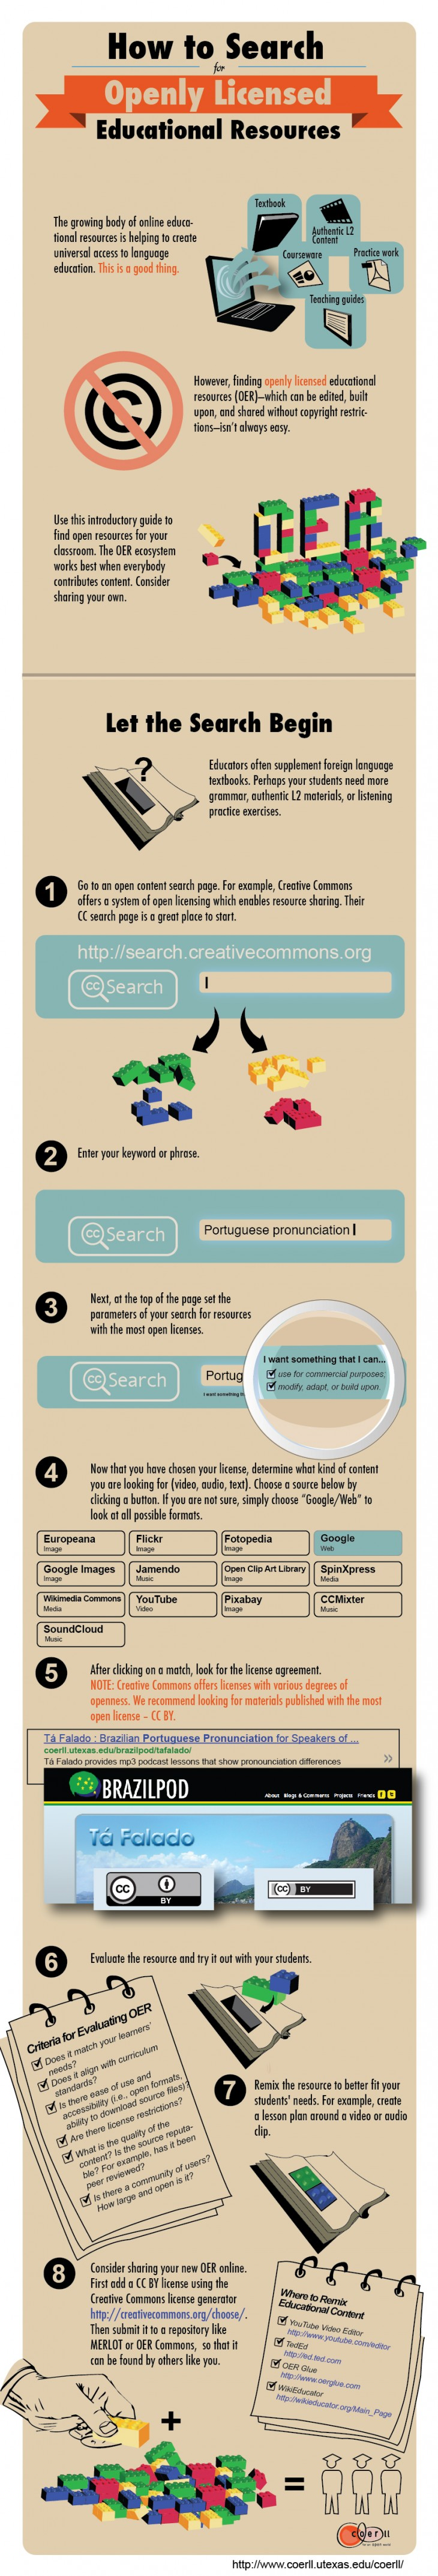 how to search infographic